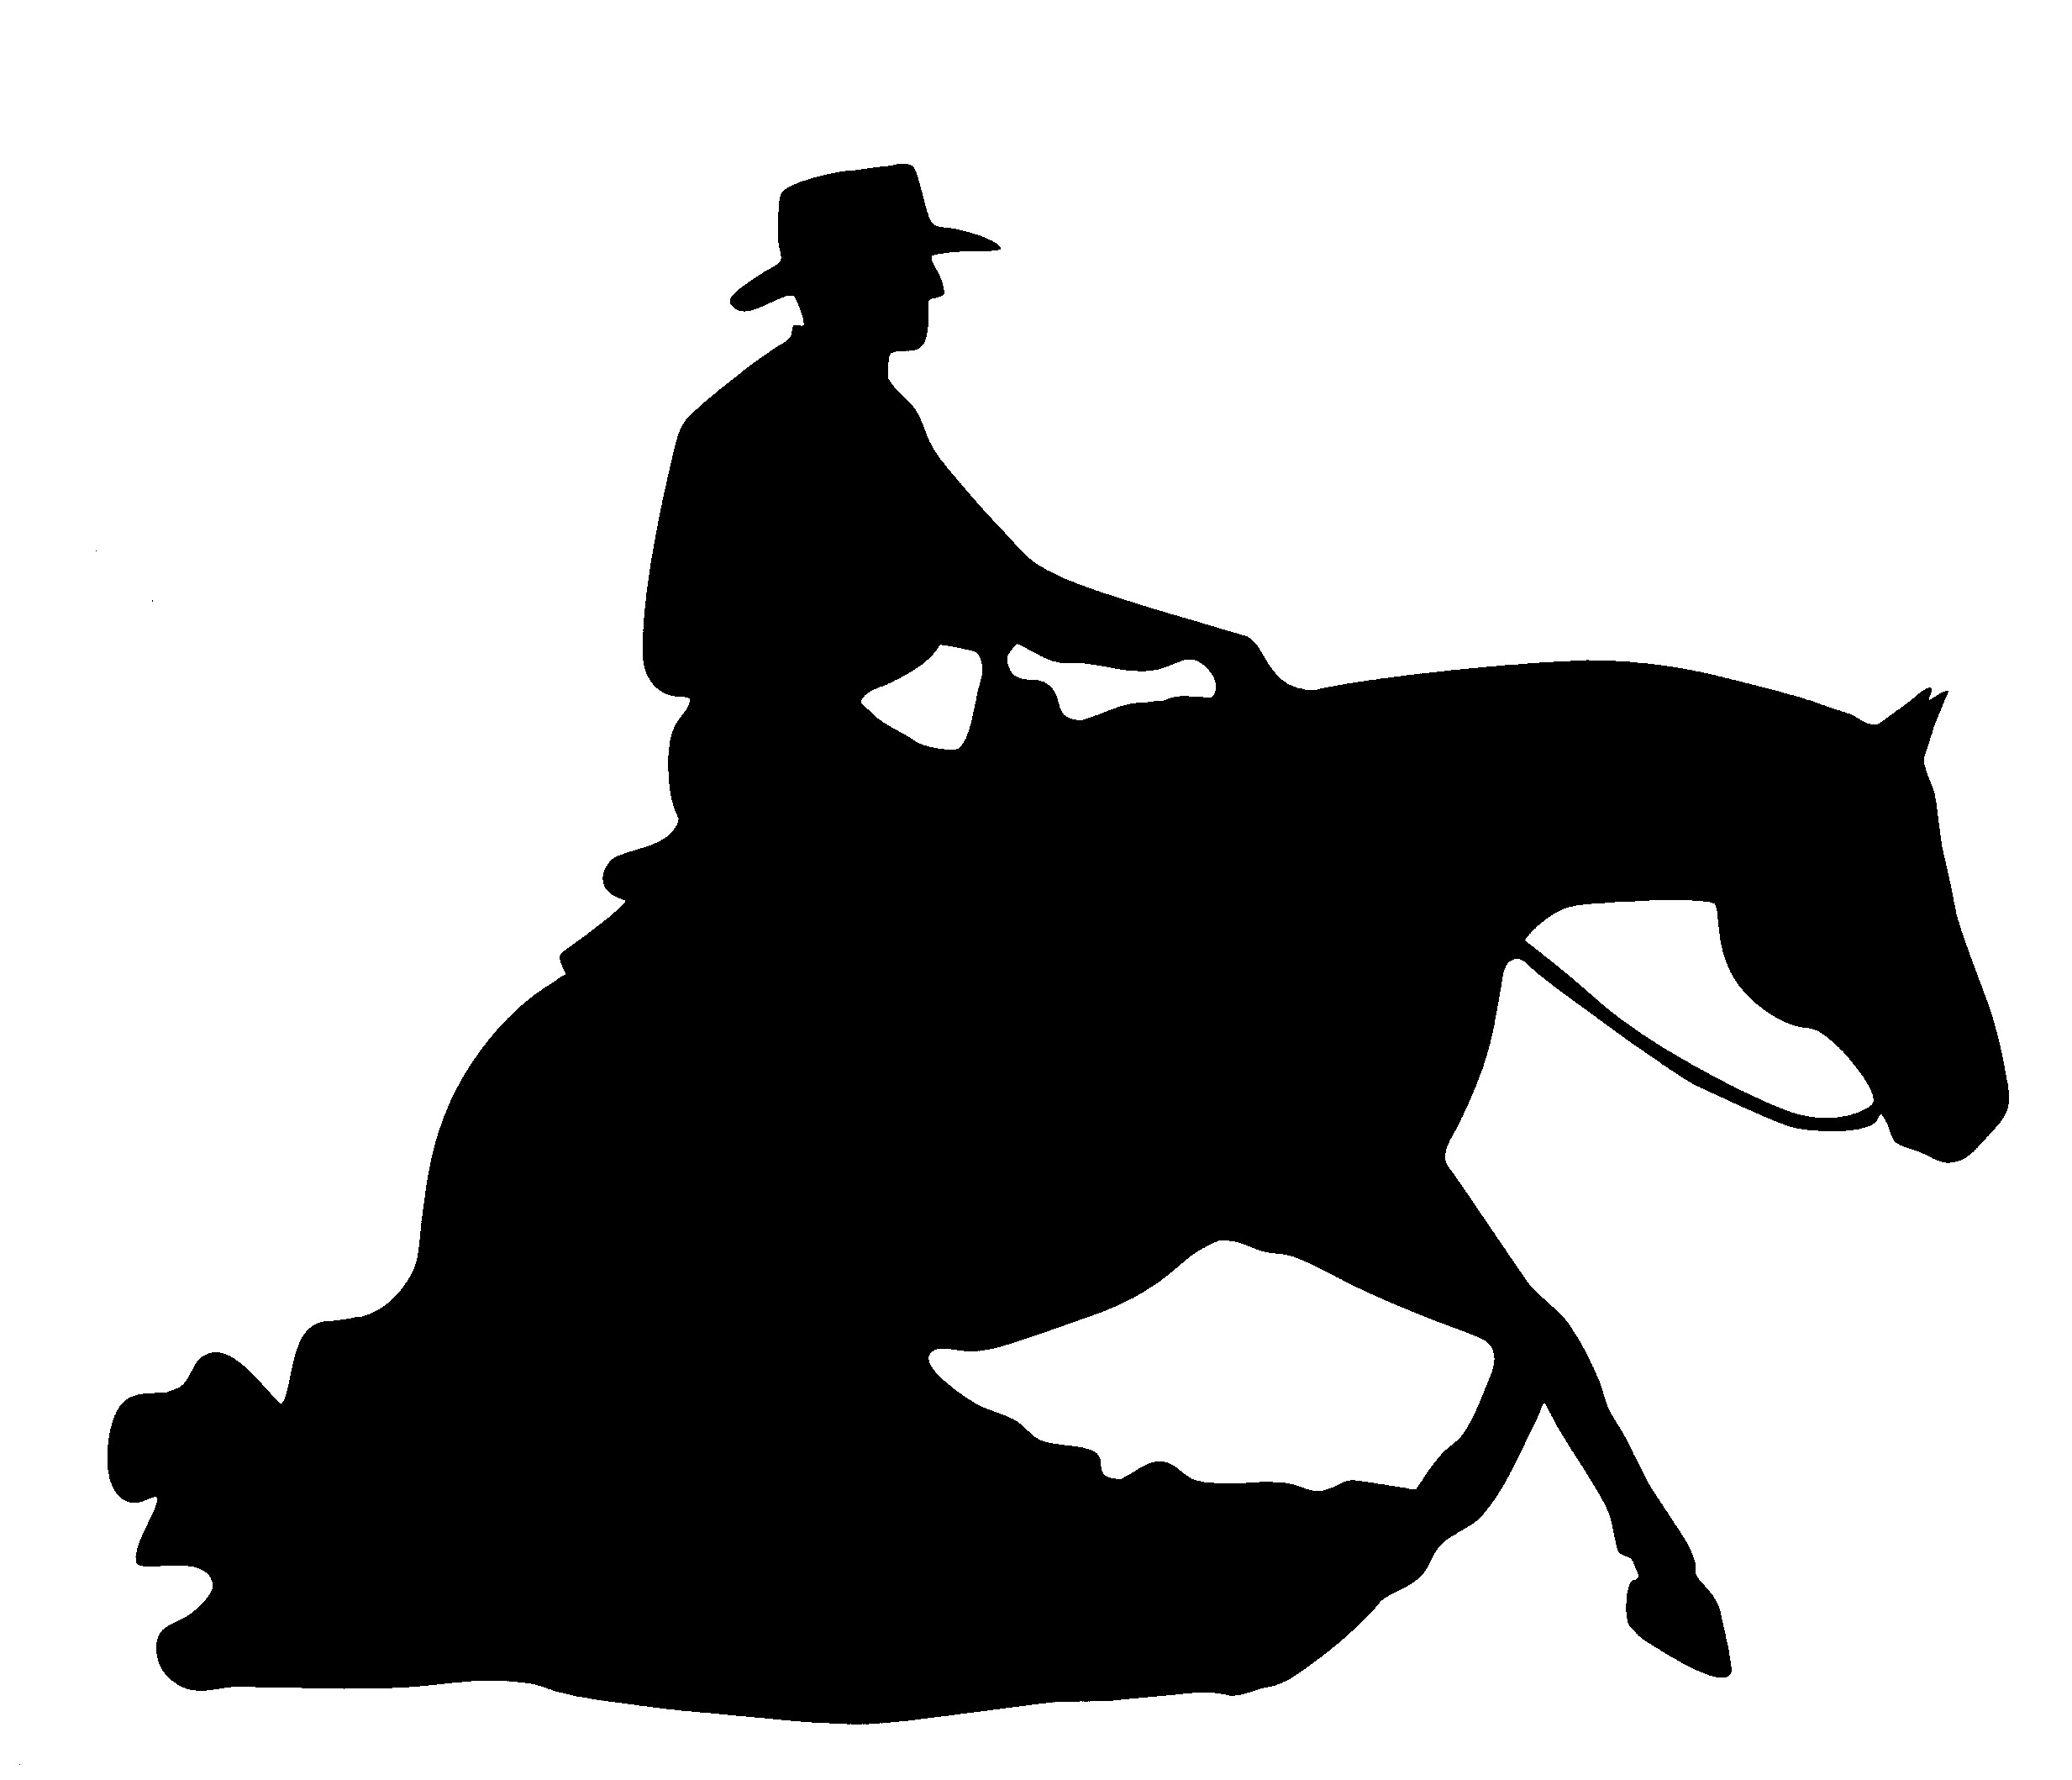 Reining Horse Reflective Decal Equestrisafe Llc